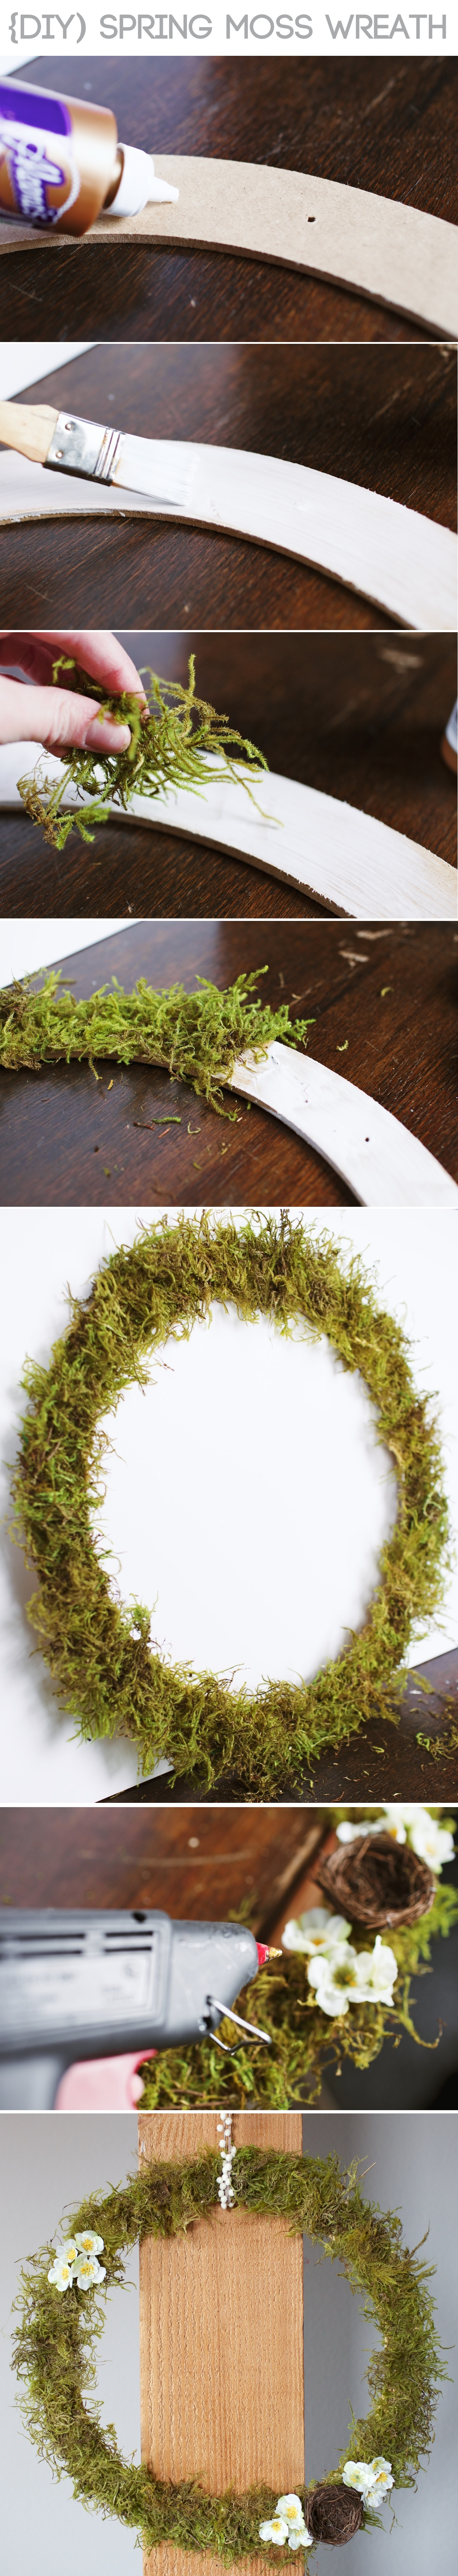 Celebrate Easter and welcome spring with this simple DIY moss wreath!   www.gimmesomestyleblog.com #diy #wreath #spring #easter